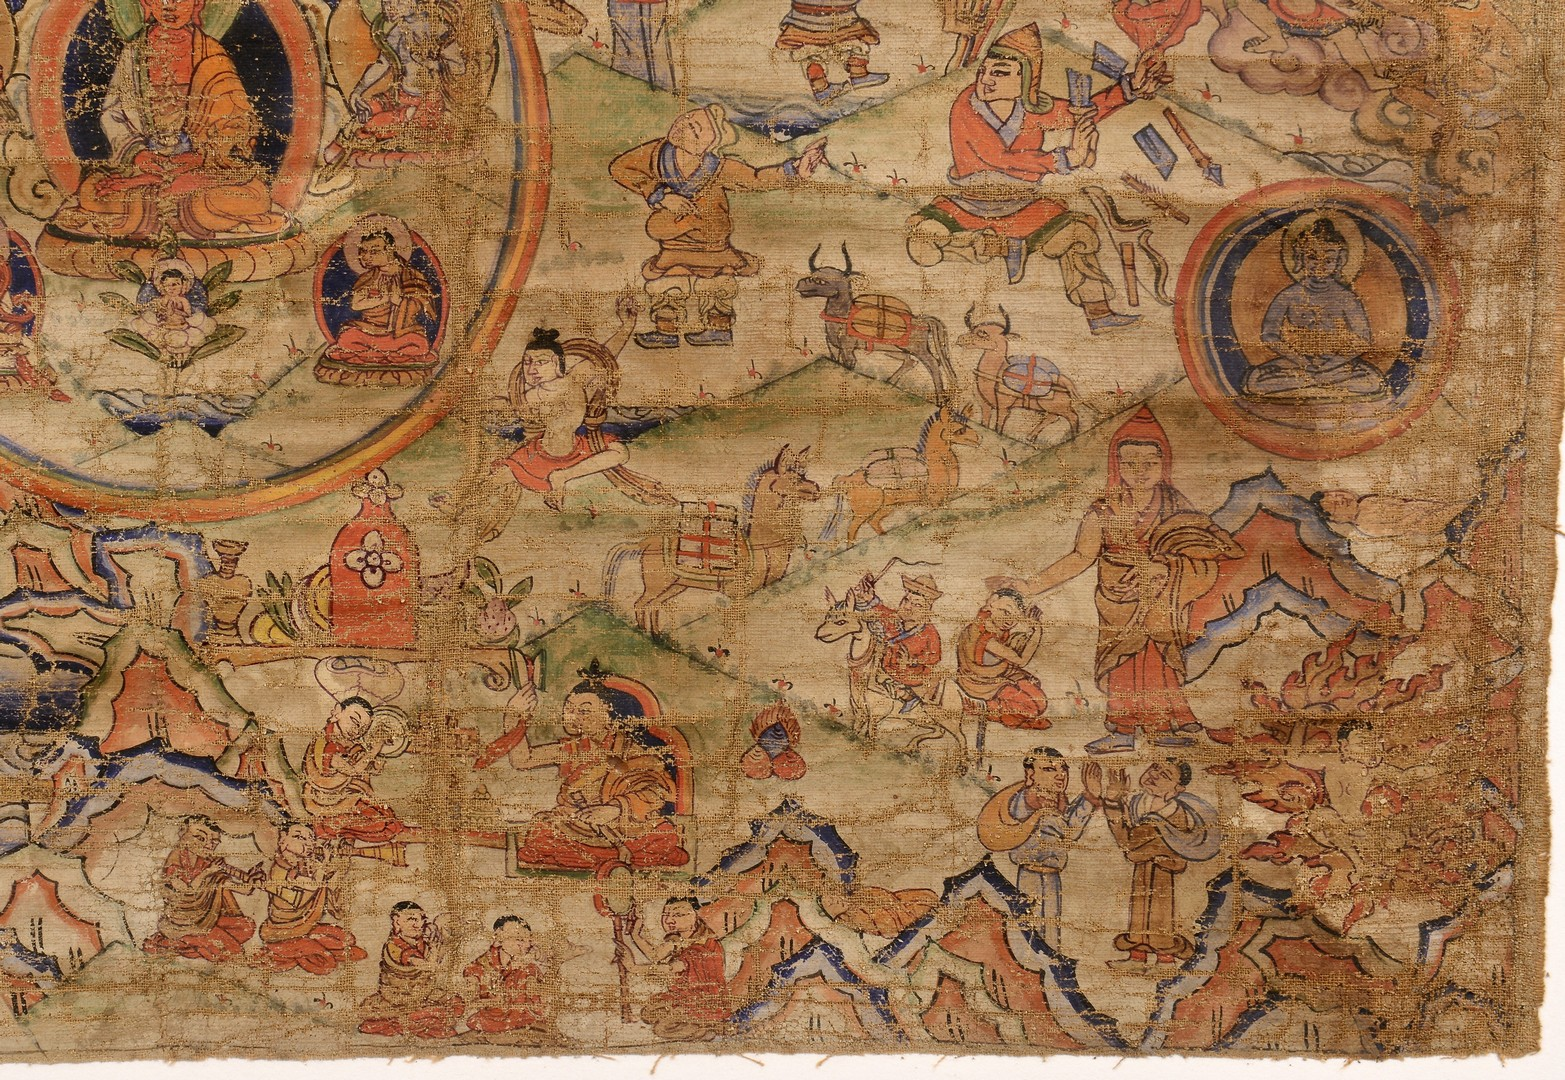 Lot 13: Tibetan Thangka, late 1700s